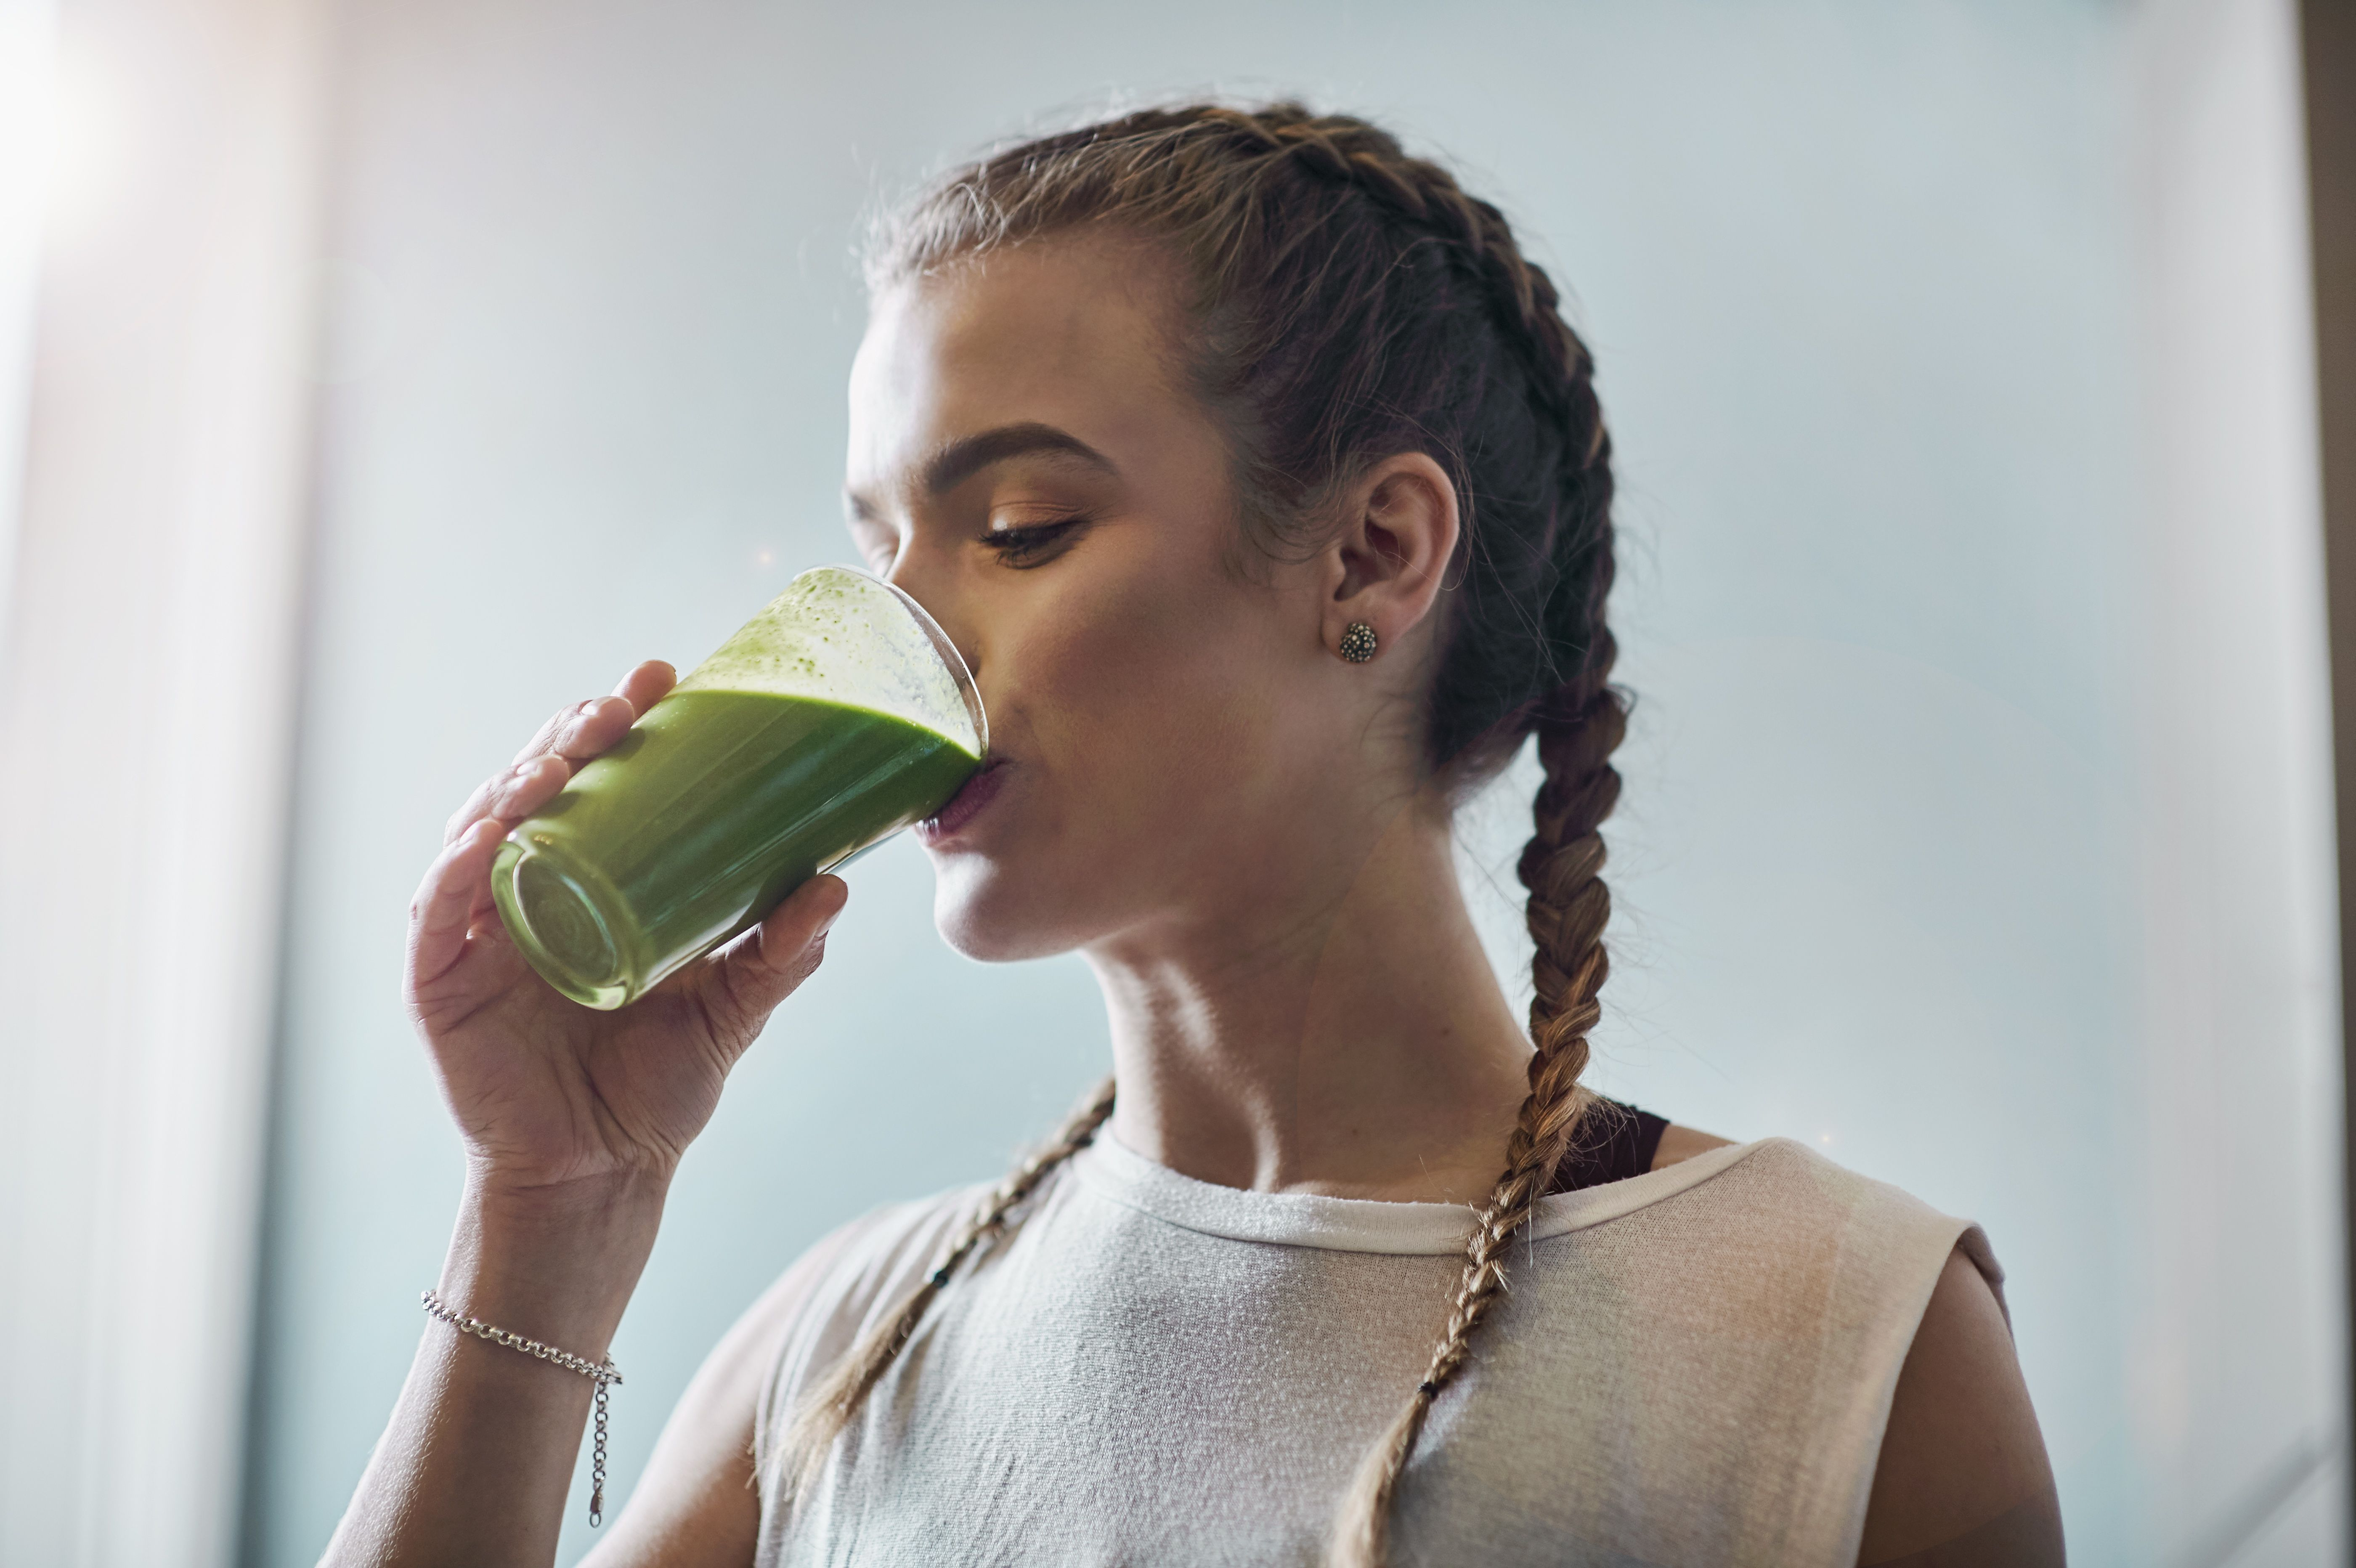 What Are the Health Benefits of Green Smoothies?